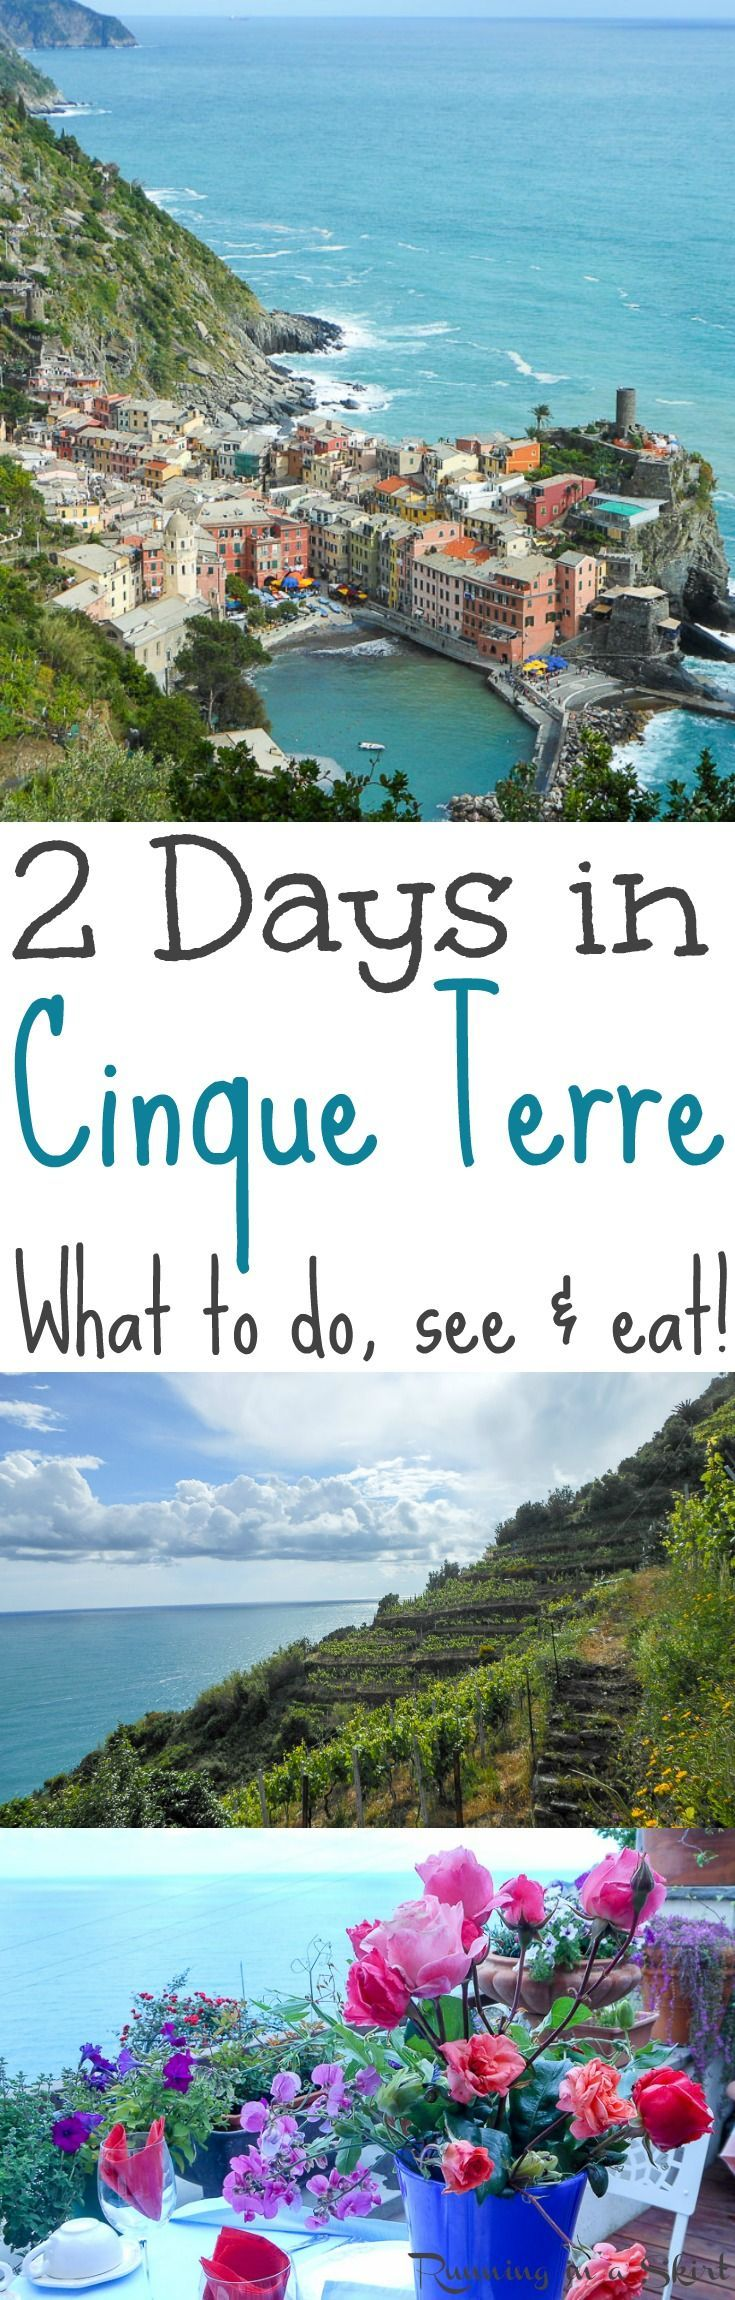 2 Days in Cinque Terre, Italy... things to do, see and eat!  Includes vacation tips on the best hikes and travel tips.  What to do in the towns and where to stay.  Gorgeous photos! / Running in a Skirt